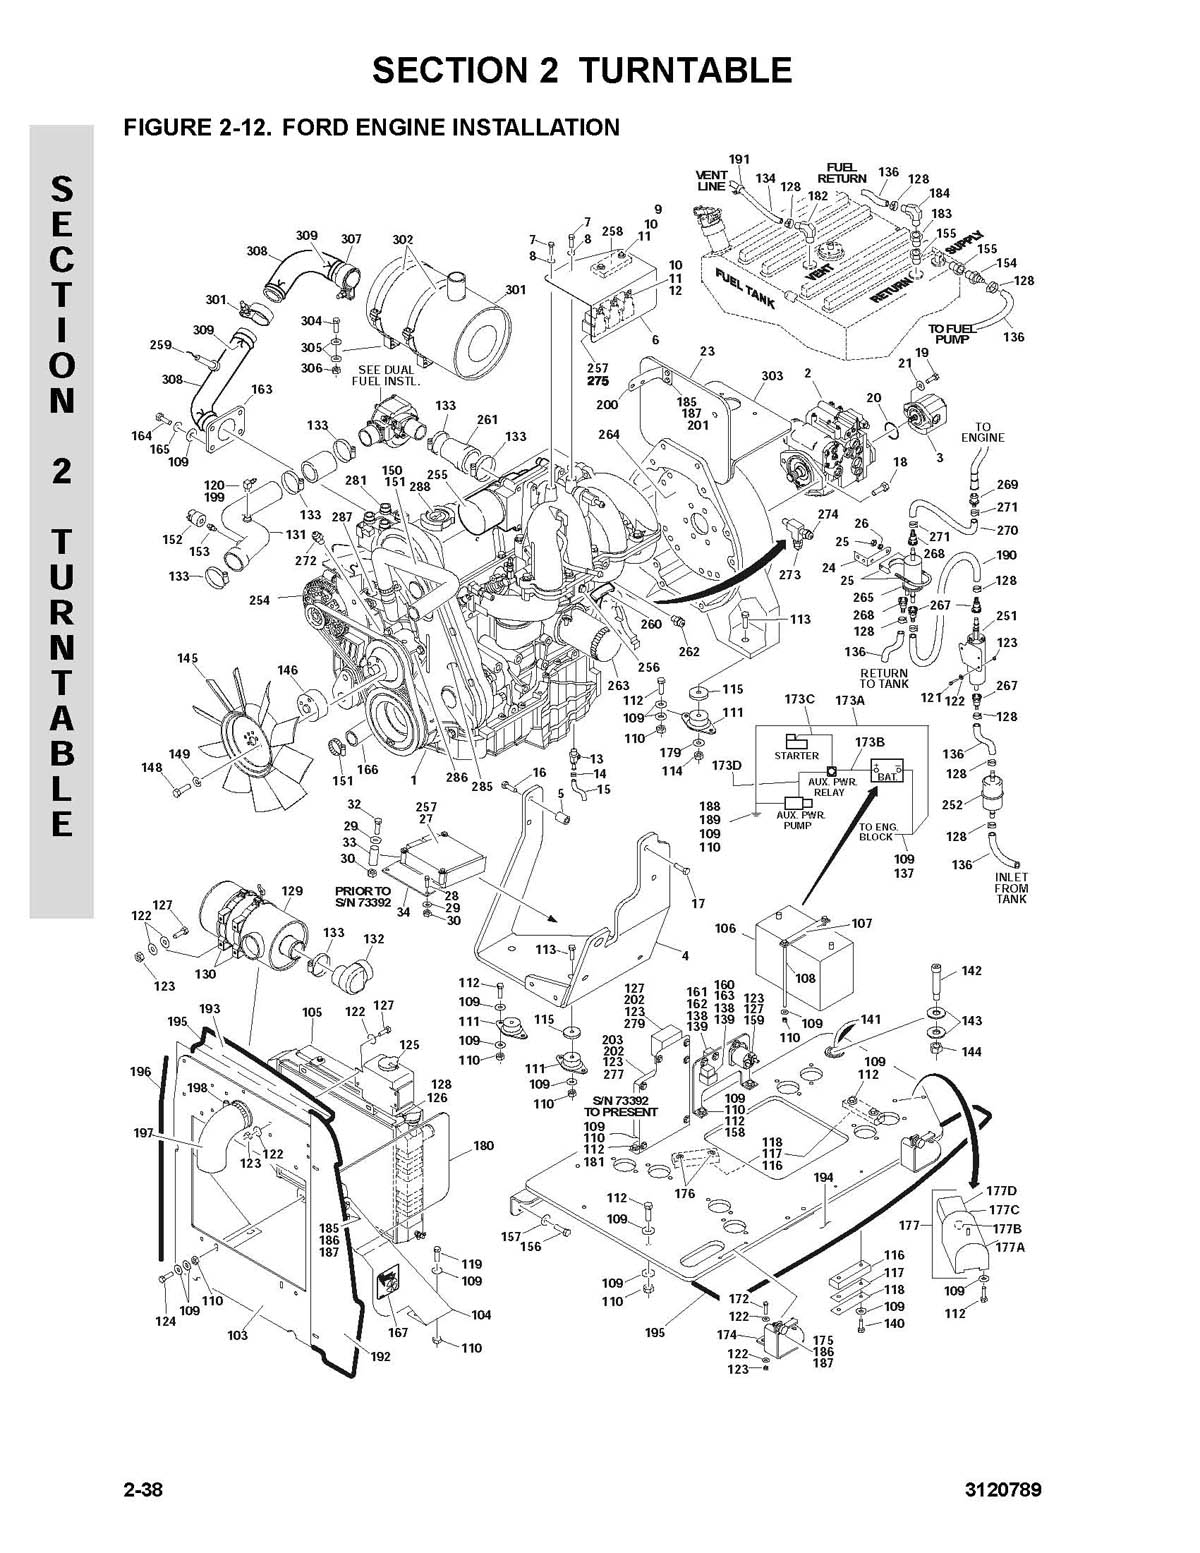 31207890238 sullair 185 wiring diagram sullair 185 engine parts \u2022 free wiring jlg 40h wiring diagram at soozxer.org